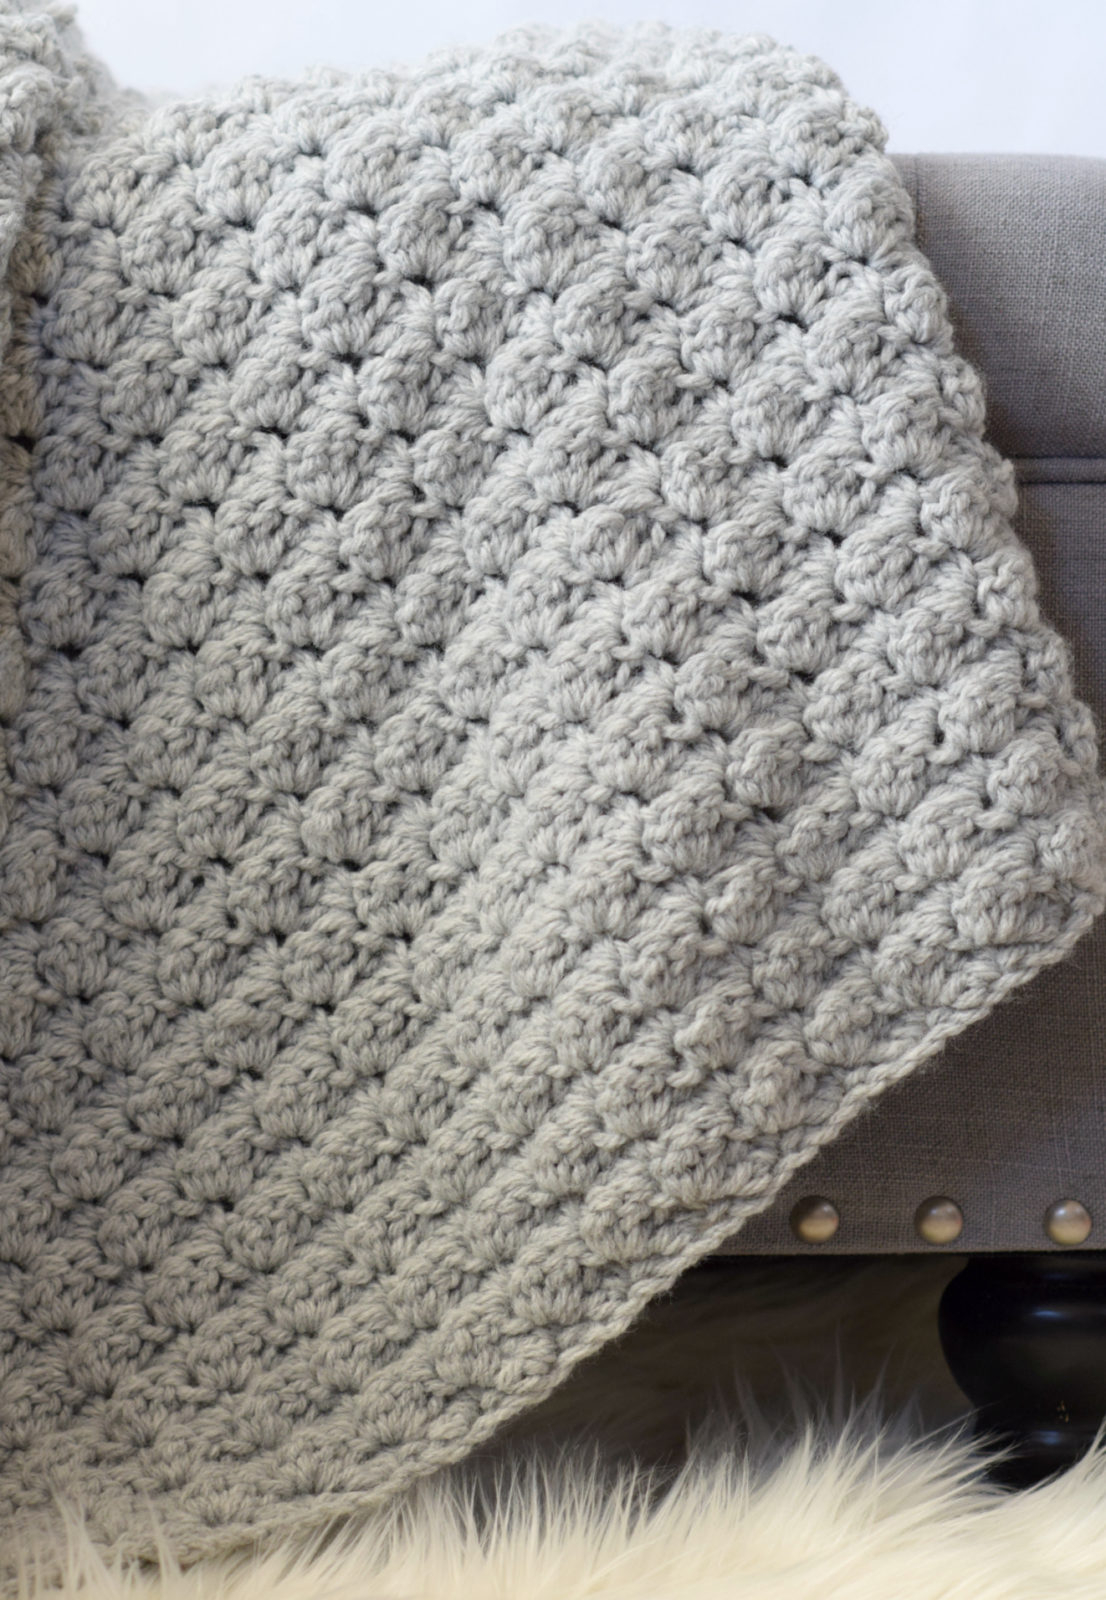 What You Should Know Before Proceeding Crochet Chunky Yarn Patterns Inspirations Best Collection Of Perfect Bernat Blanket Yarn